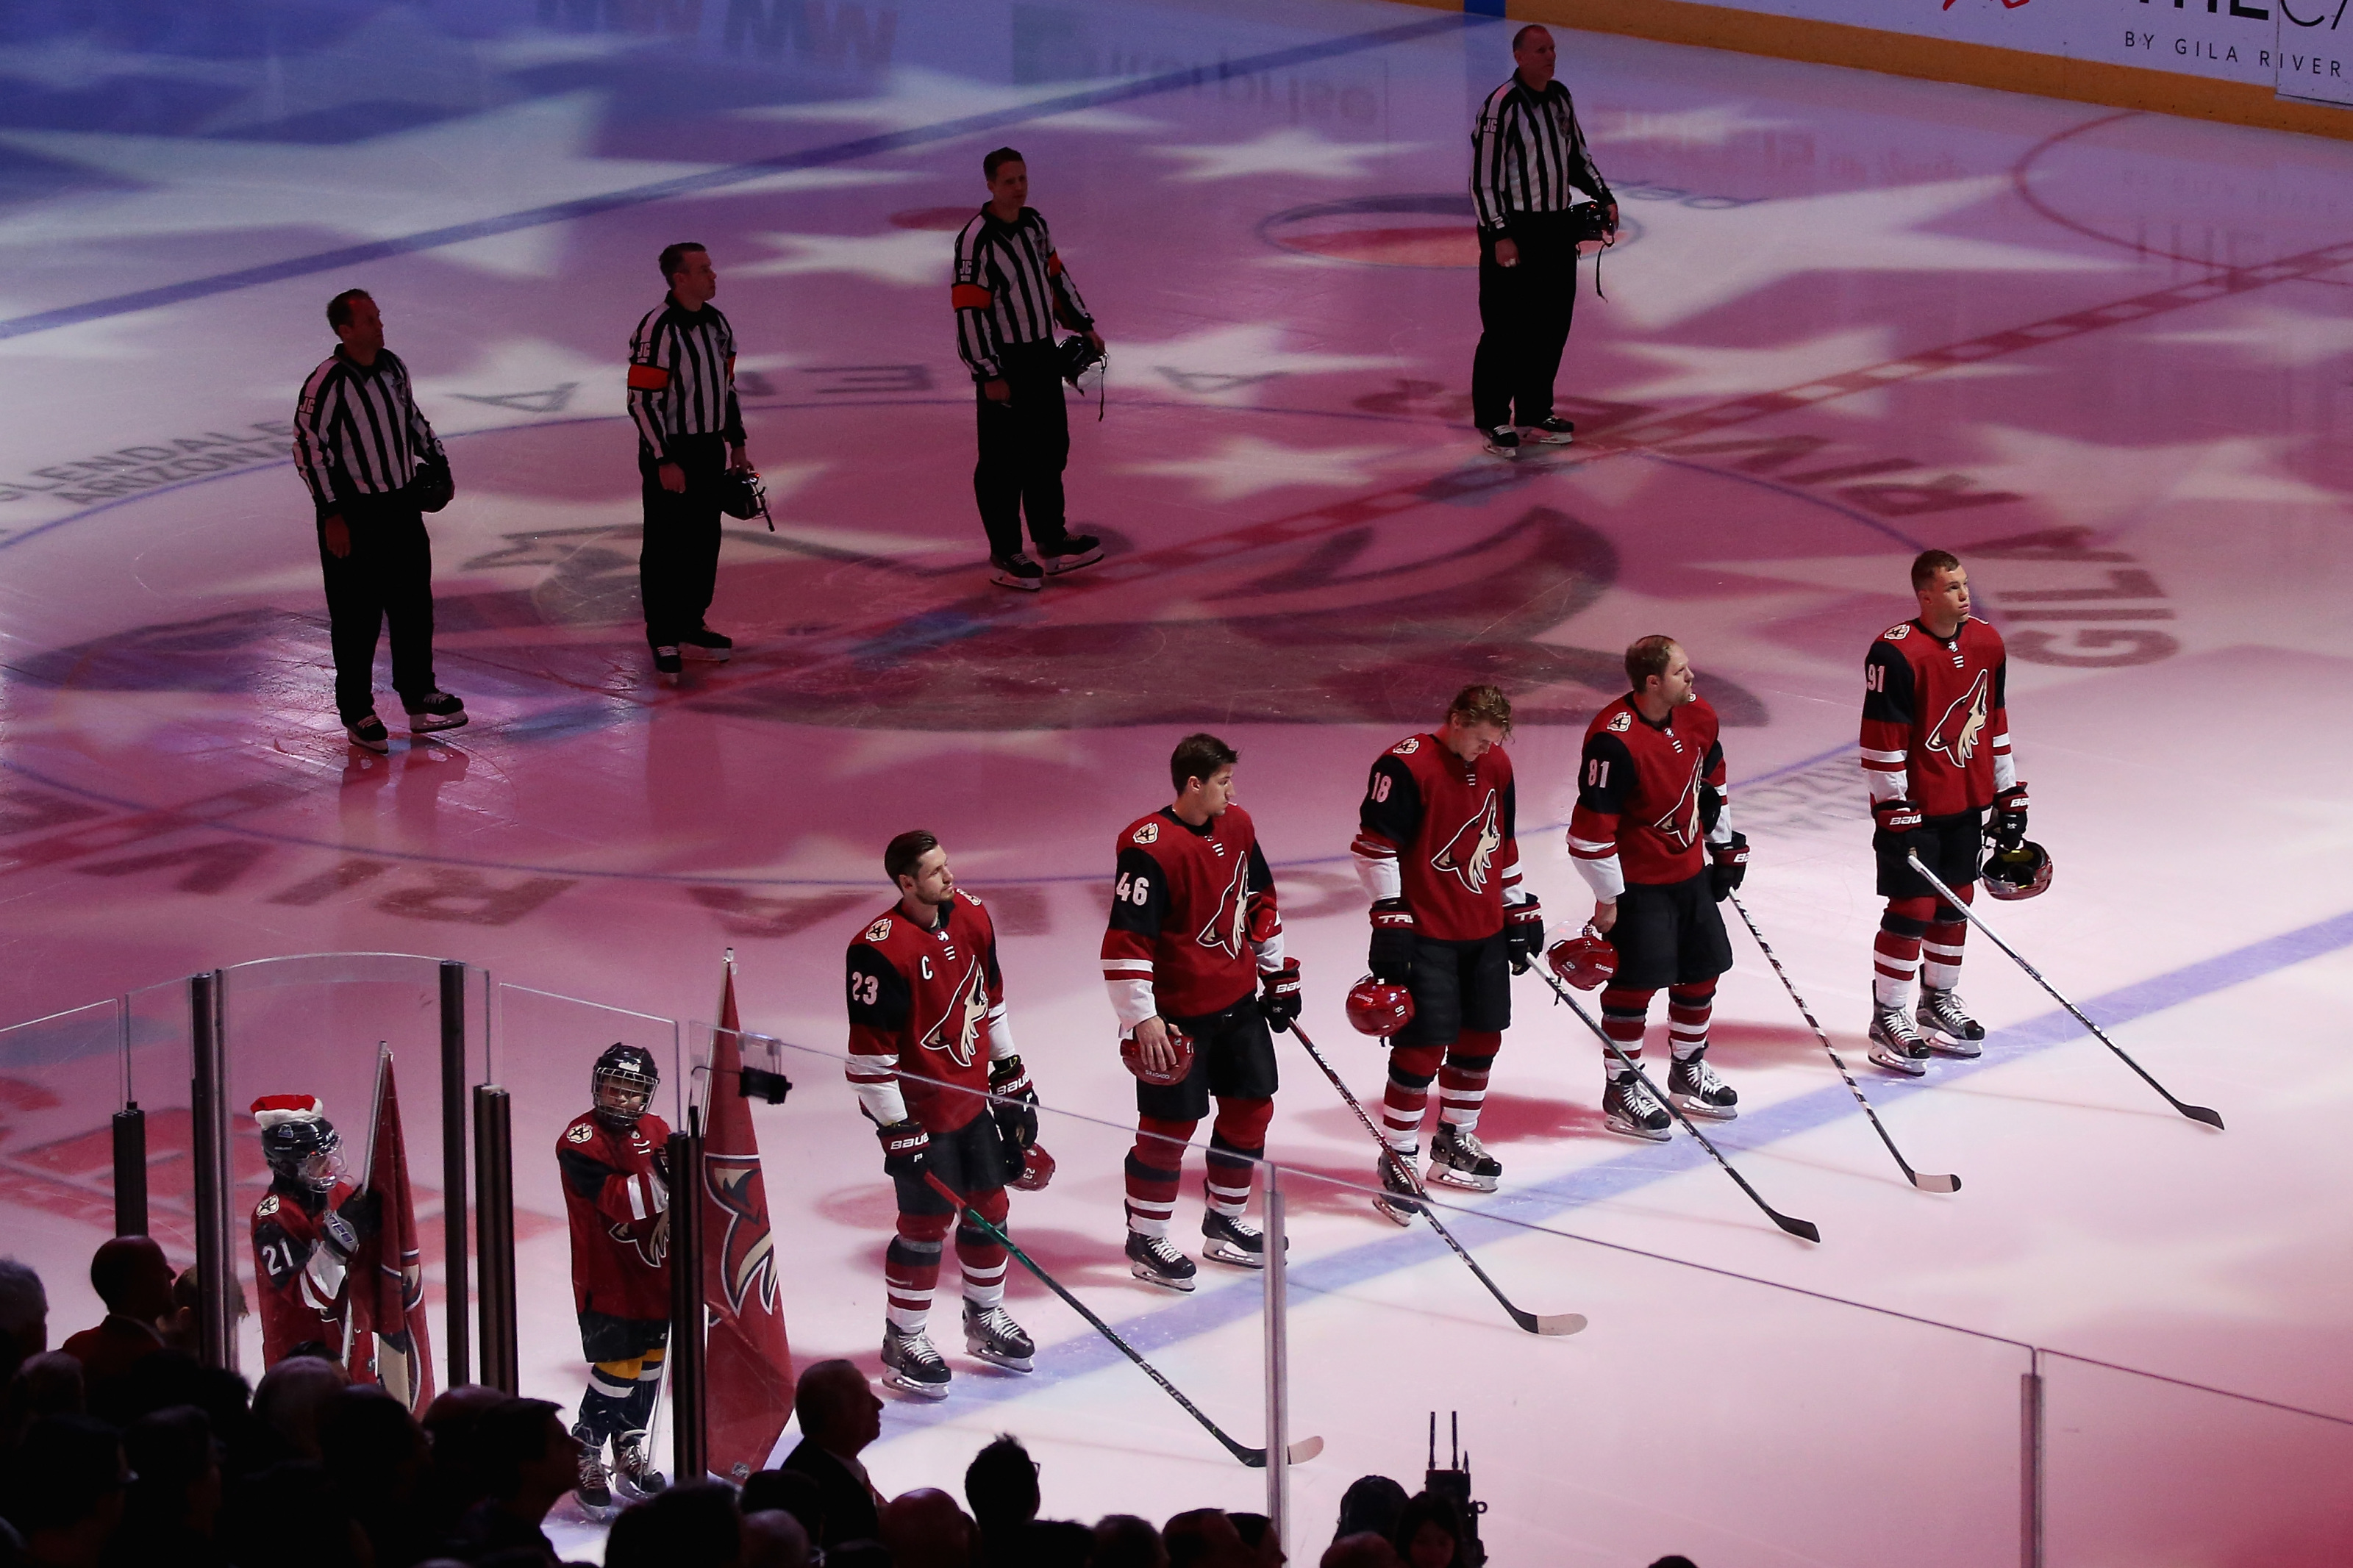 Arizona Coyotes: Missing the Playoffs again would let fans down